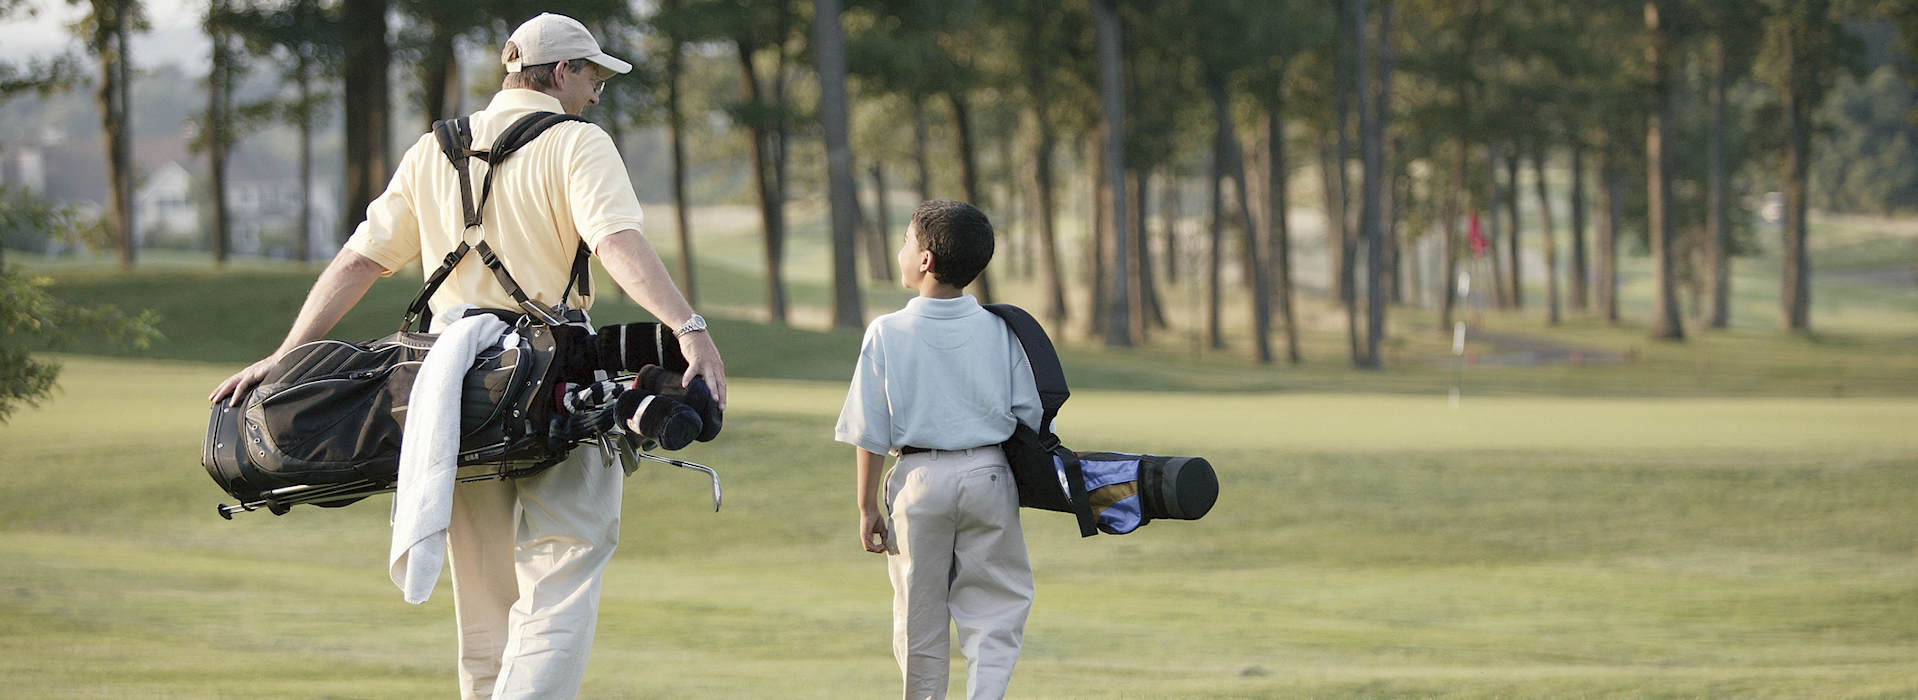 A Walk in the Park – Golf's Health Benefits